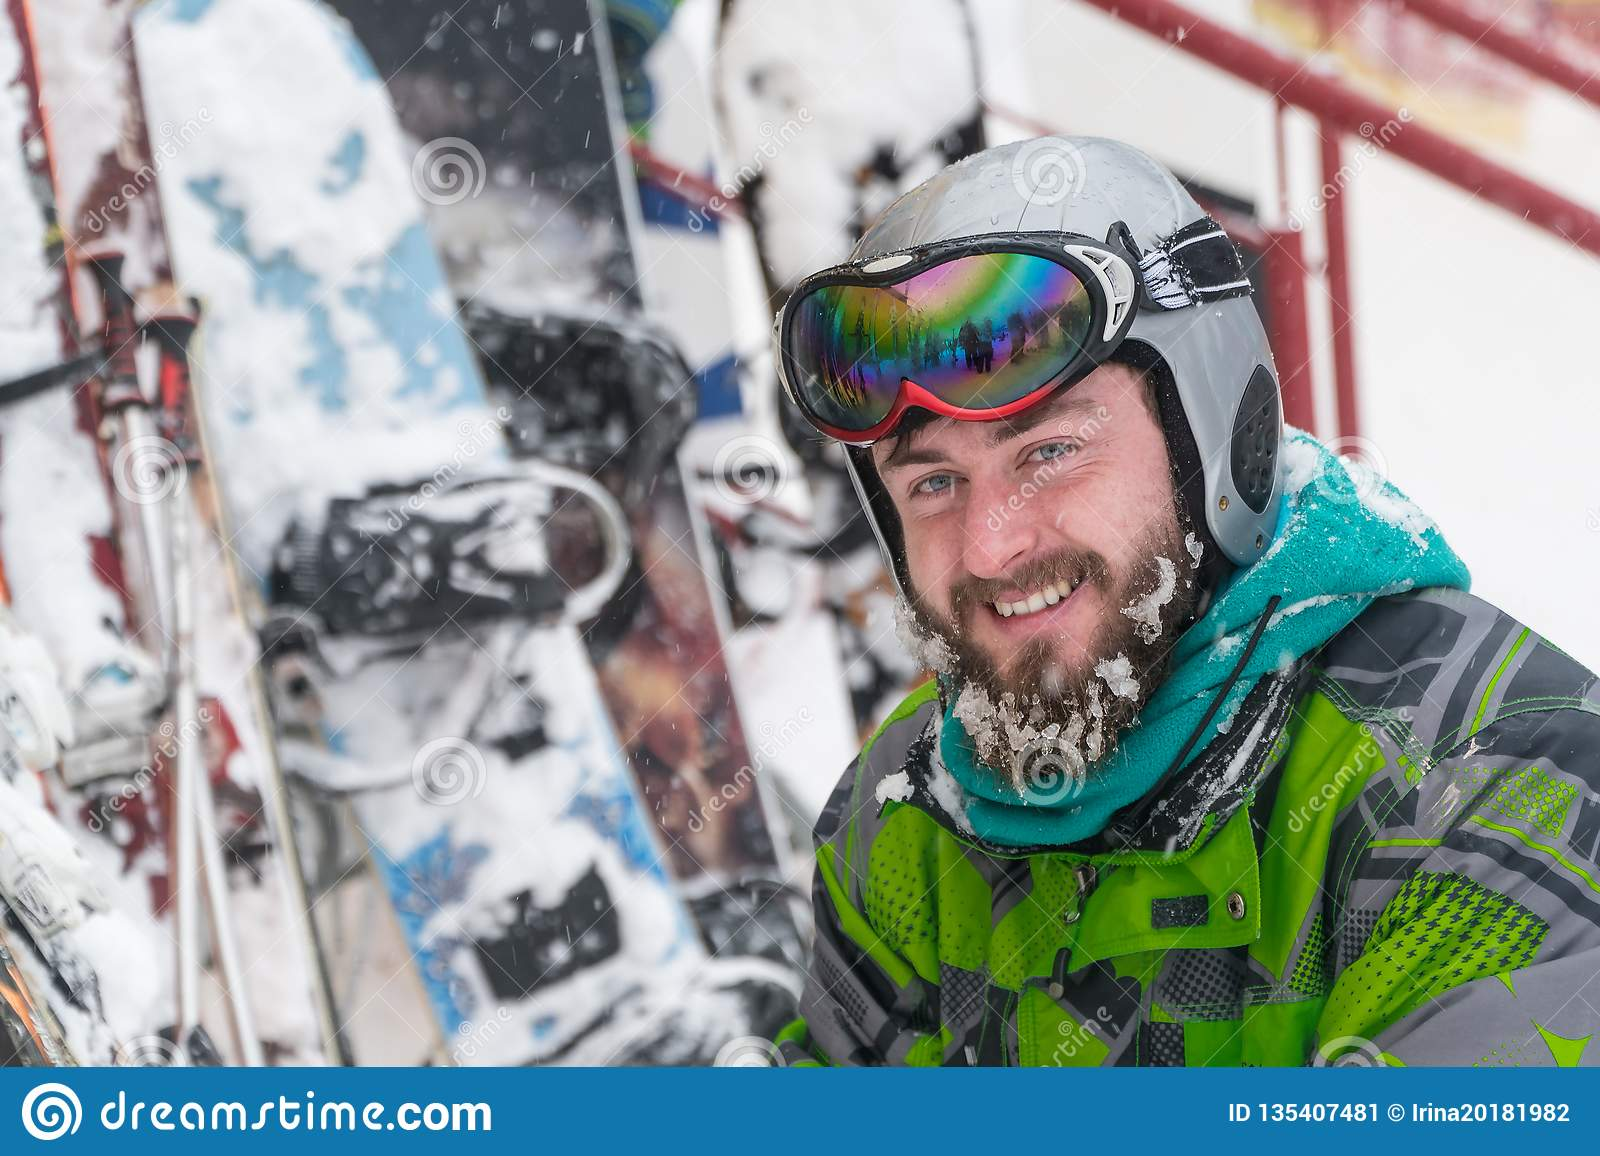 Skier in the mask on the face of a snow man and snow skis